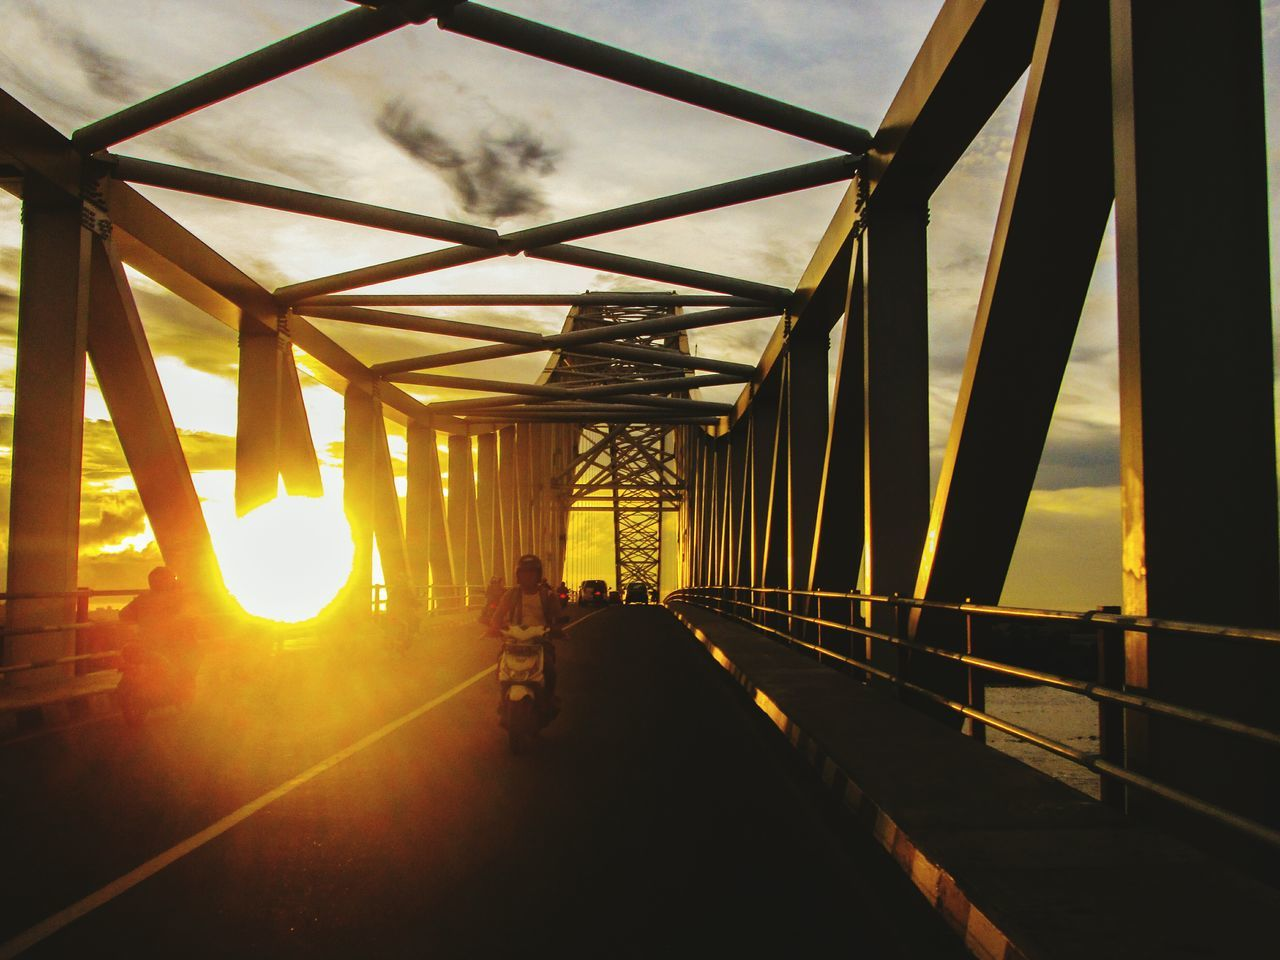 bridge - man made structure, connection, engineering, sunset, transportation, suspension bridge, sky, sun, built structure, sunlight, architecture, travel, bridge, silhouette, outdoors, no people, day, city